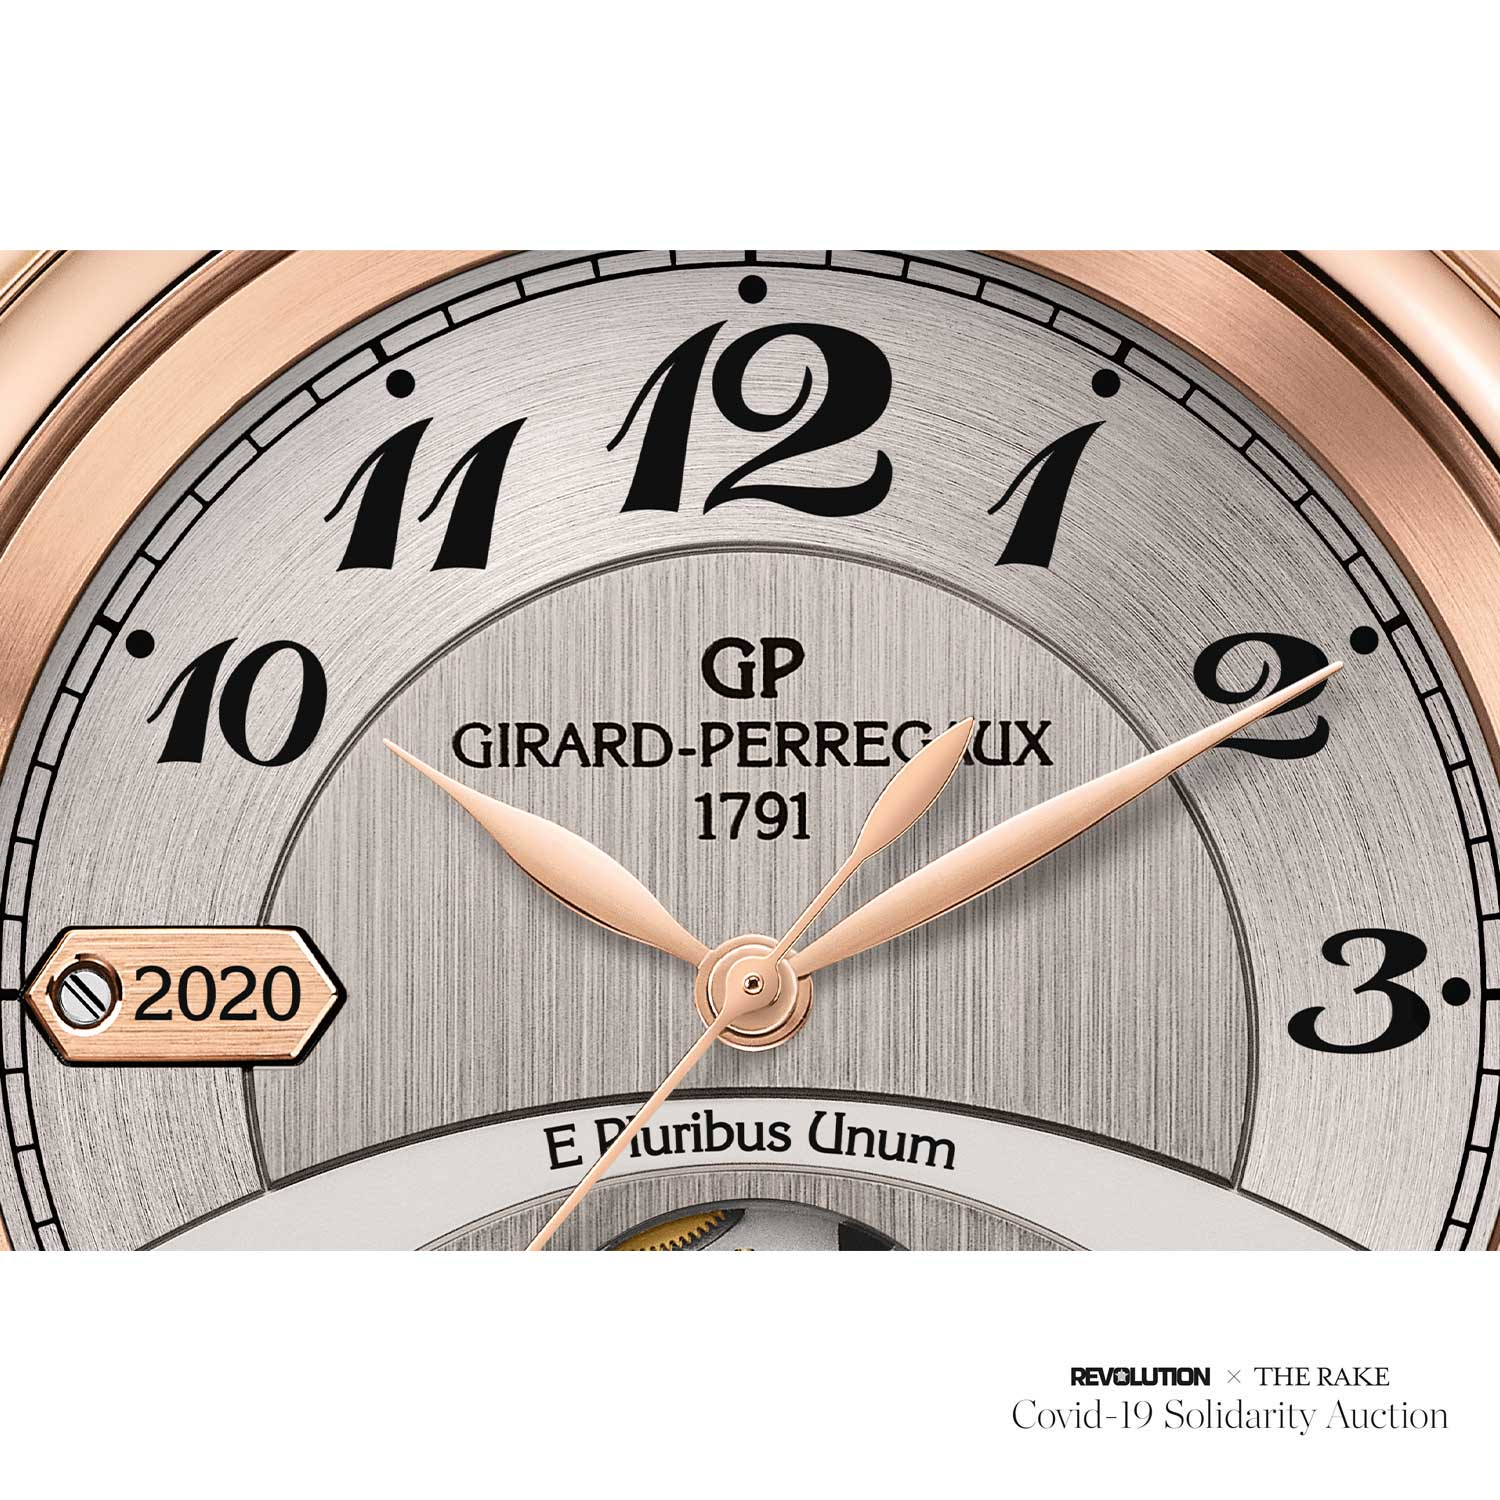 Place Girardet Prototype with 2020 marked on the year plate, which is outside of the 1791-2016 formally issued pieces in 2016, specially engraved for Revolution x The Rake Covid-19 Solidarity Auction